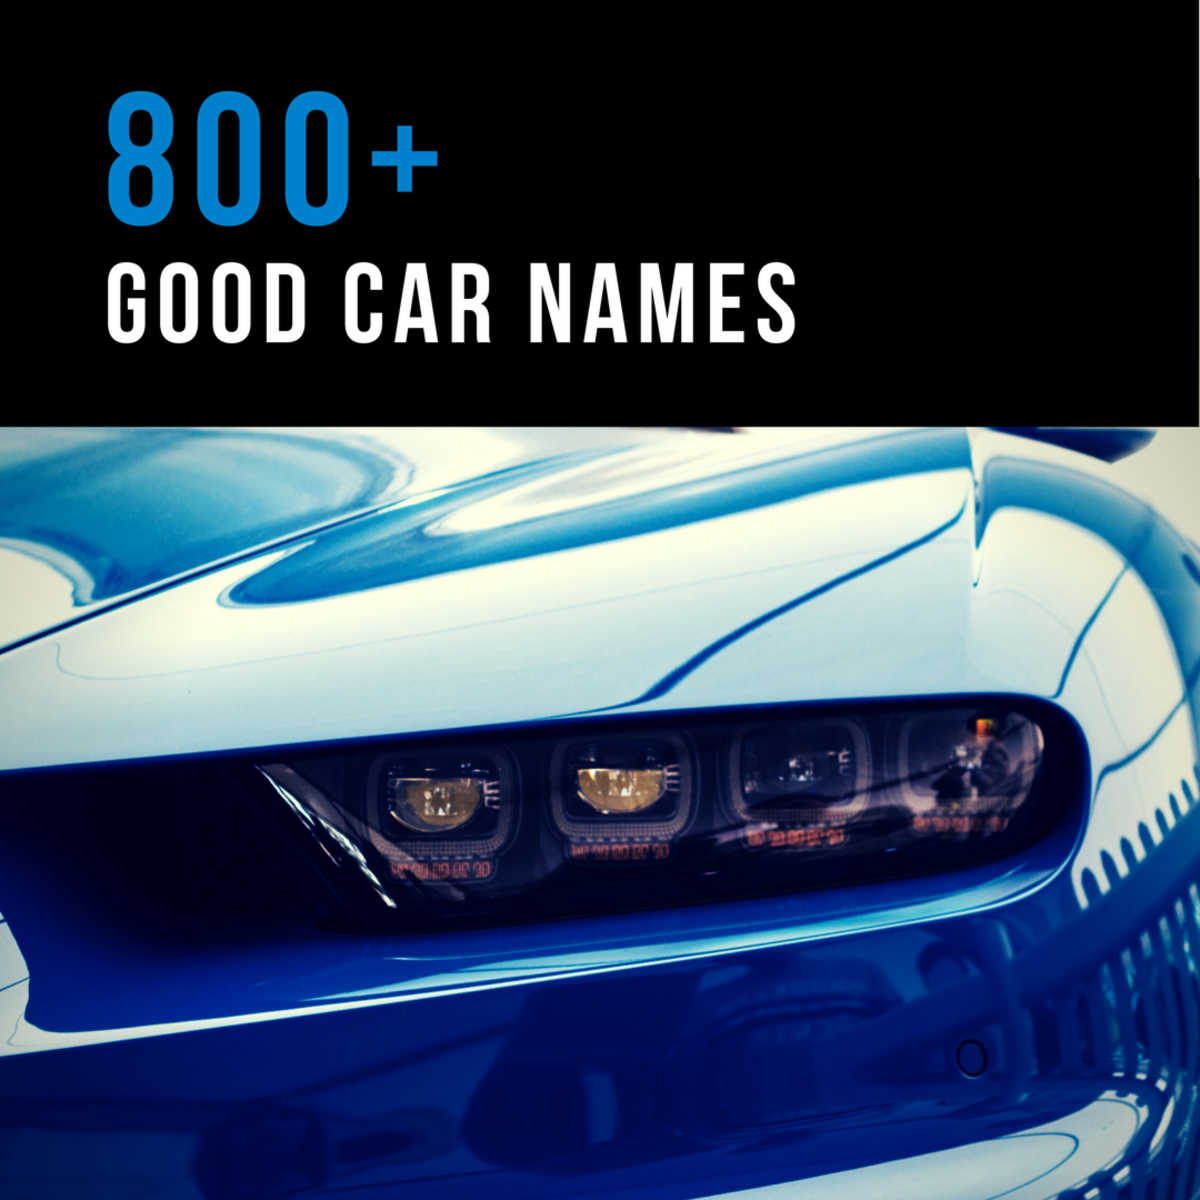 800 Good Car Names Axleaddict A Community Of Car Lovers Enthusiasts And Mechanics Sharing Our Auto Advice